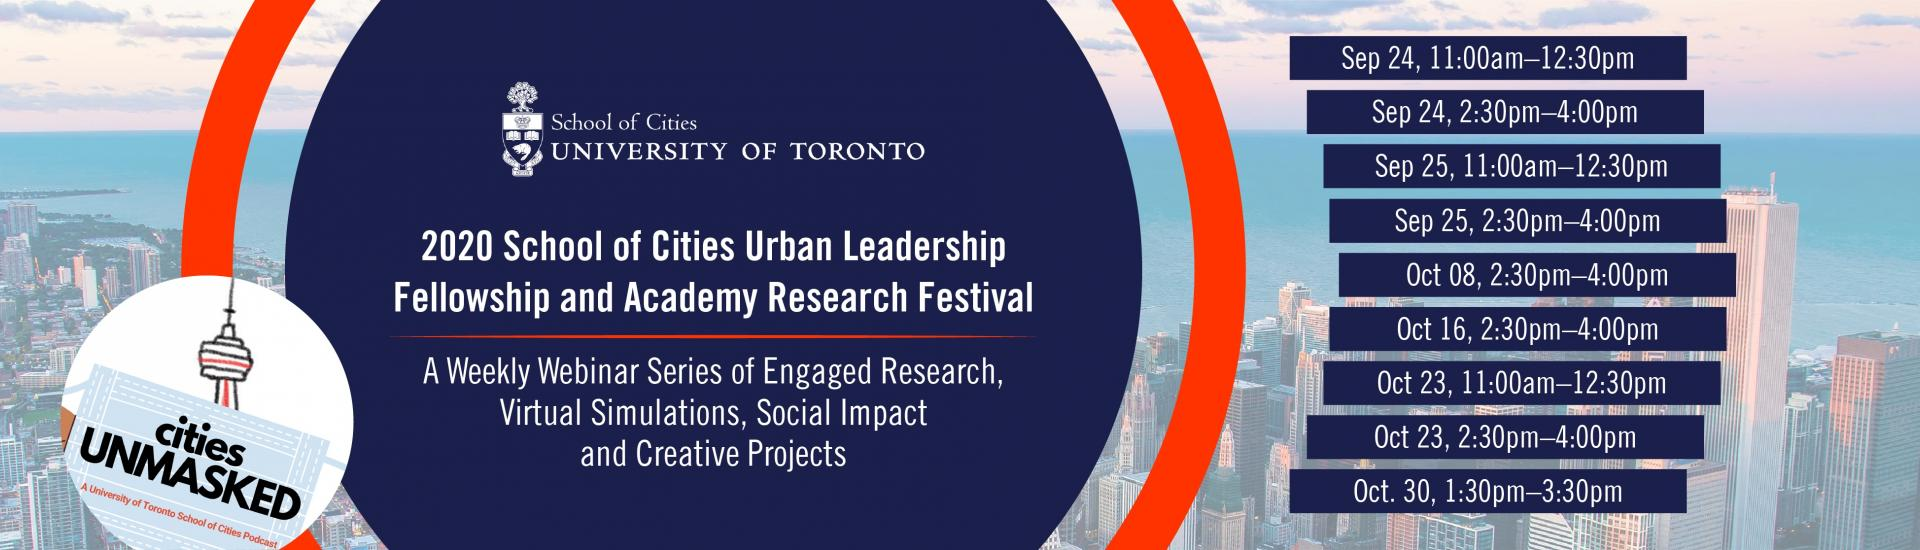 School of Cities Urban Leadership Fellowship and Academy (Virtual)Research Festival